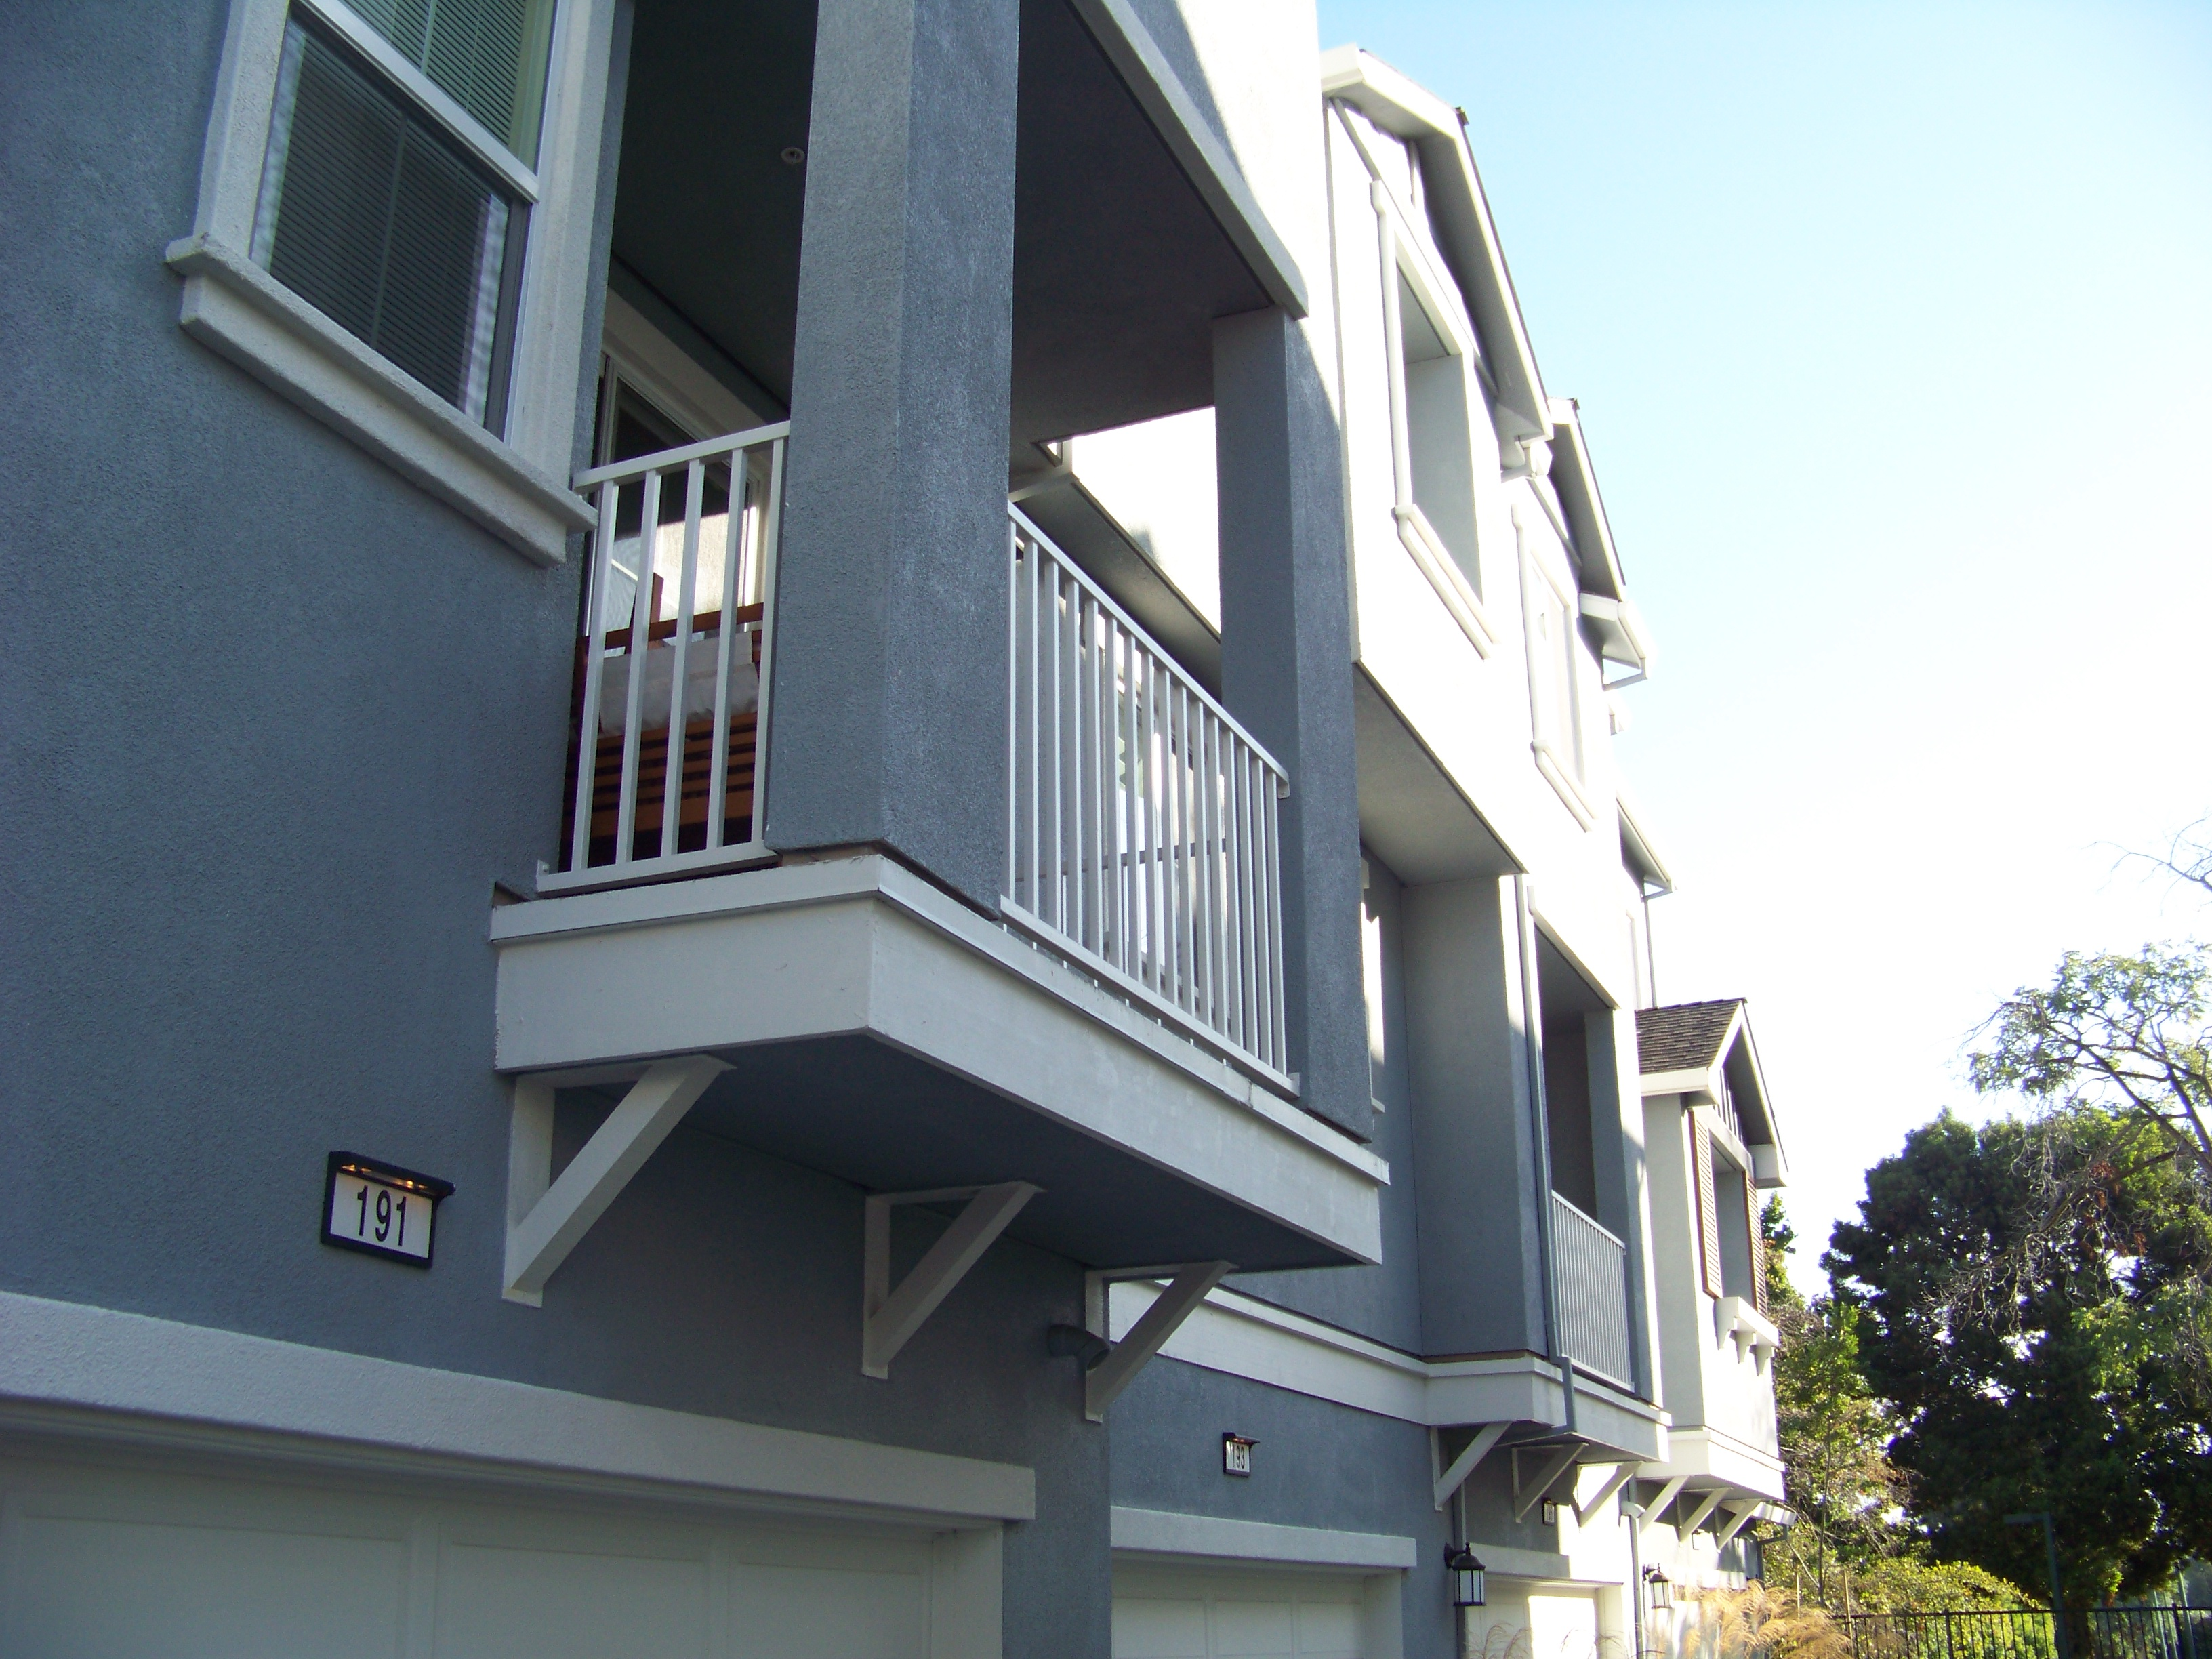 Ebm construction inc projects bedford square by pulte for Steel balcony